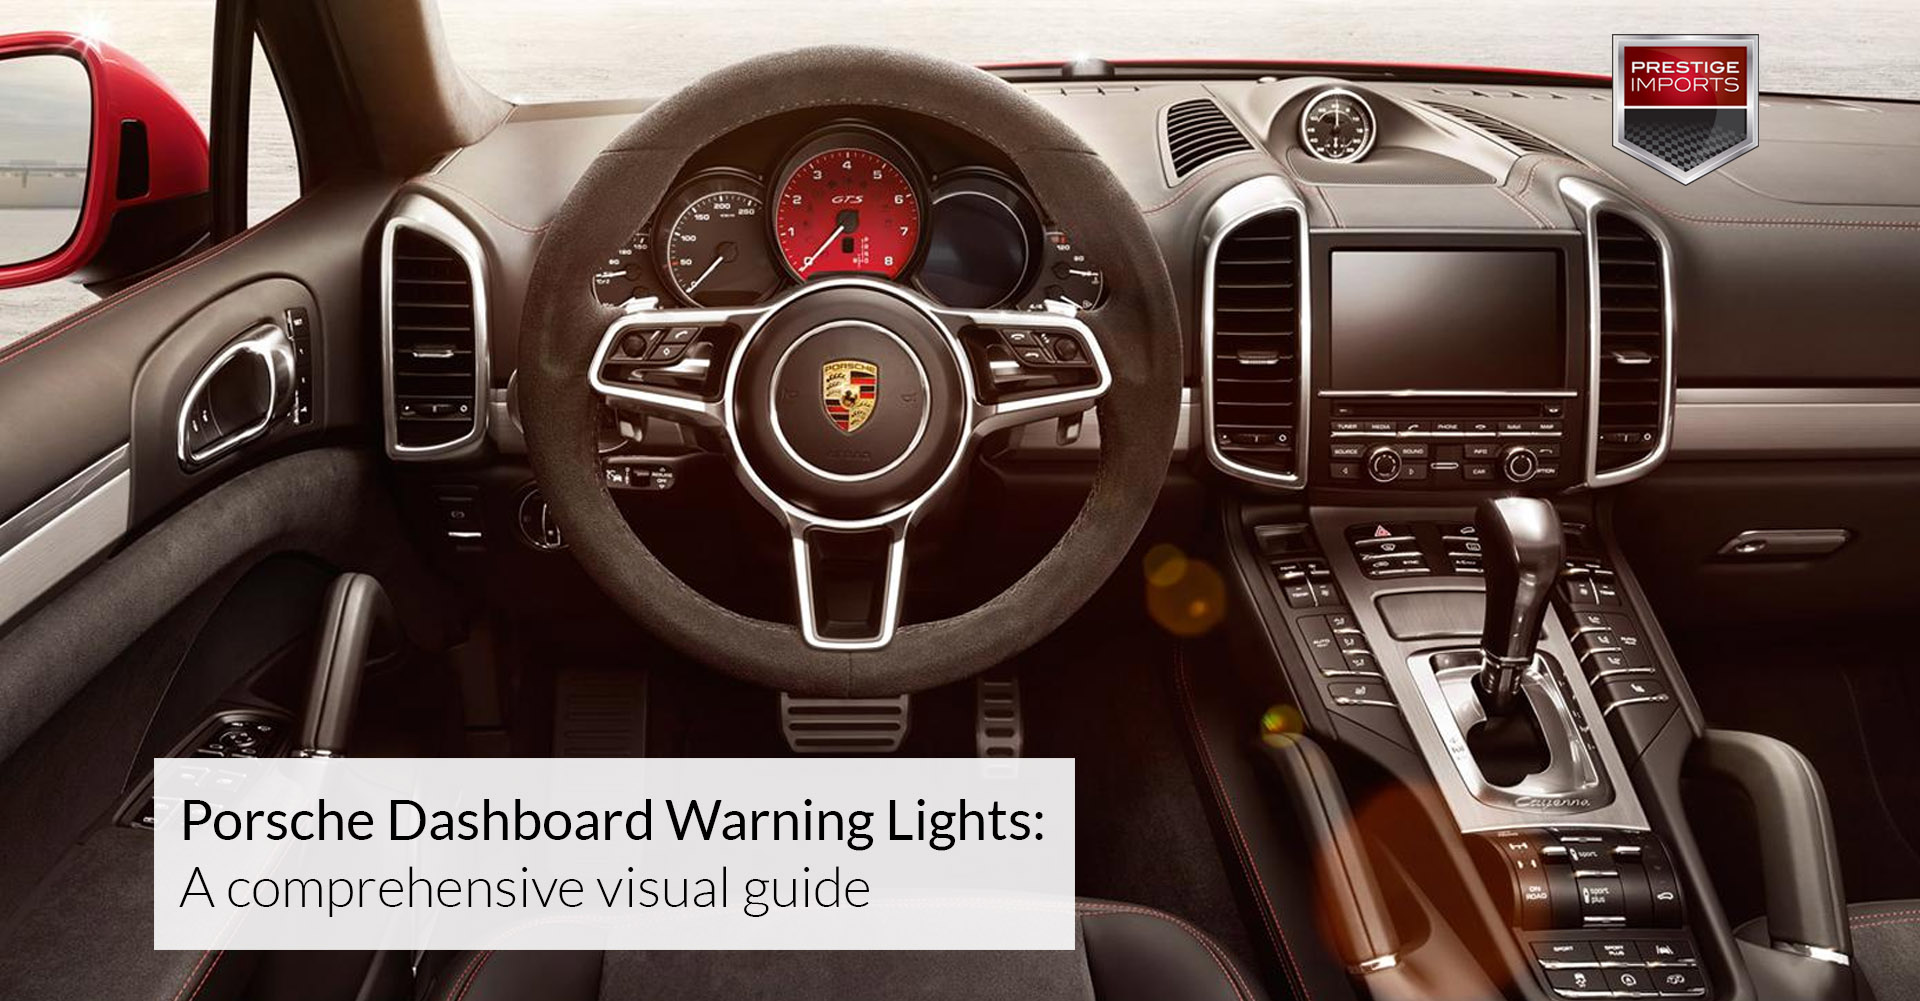 Porsche Dashboard Warning Lights - A comprehensive visual guide ?